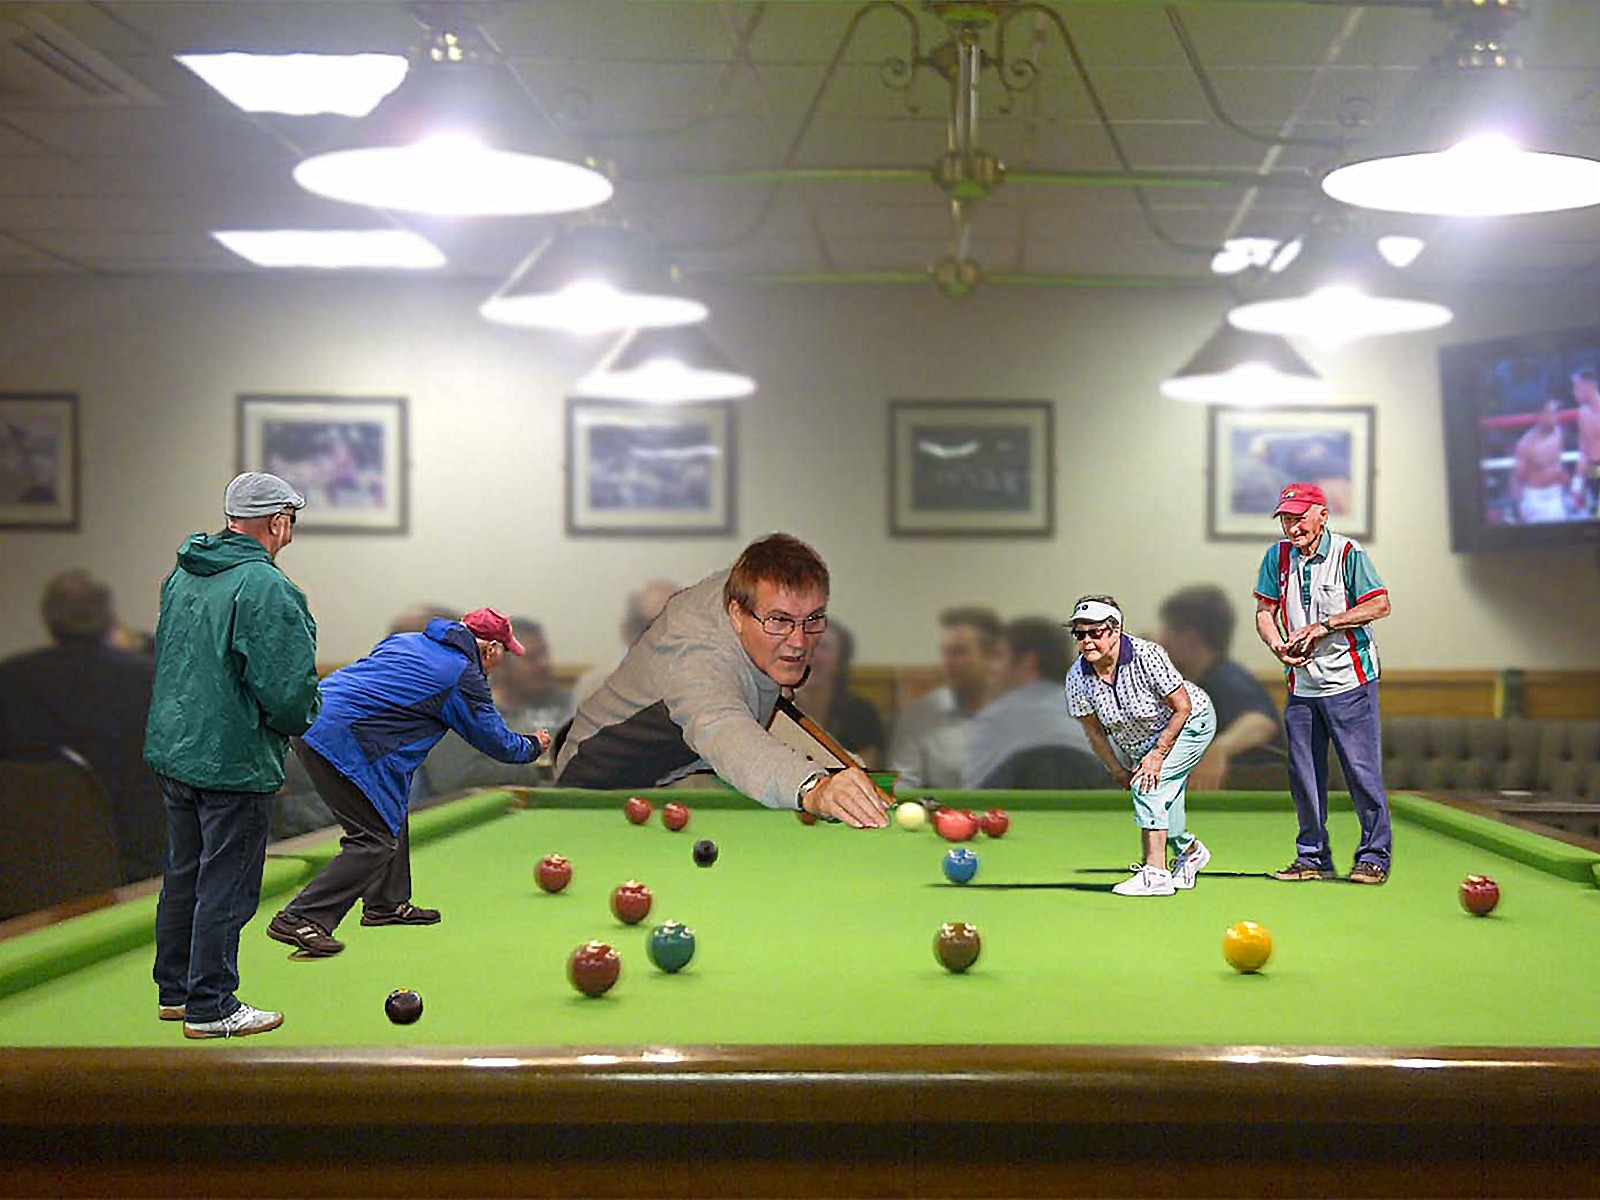 Snooker bowls collage